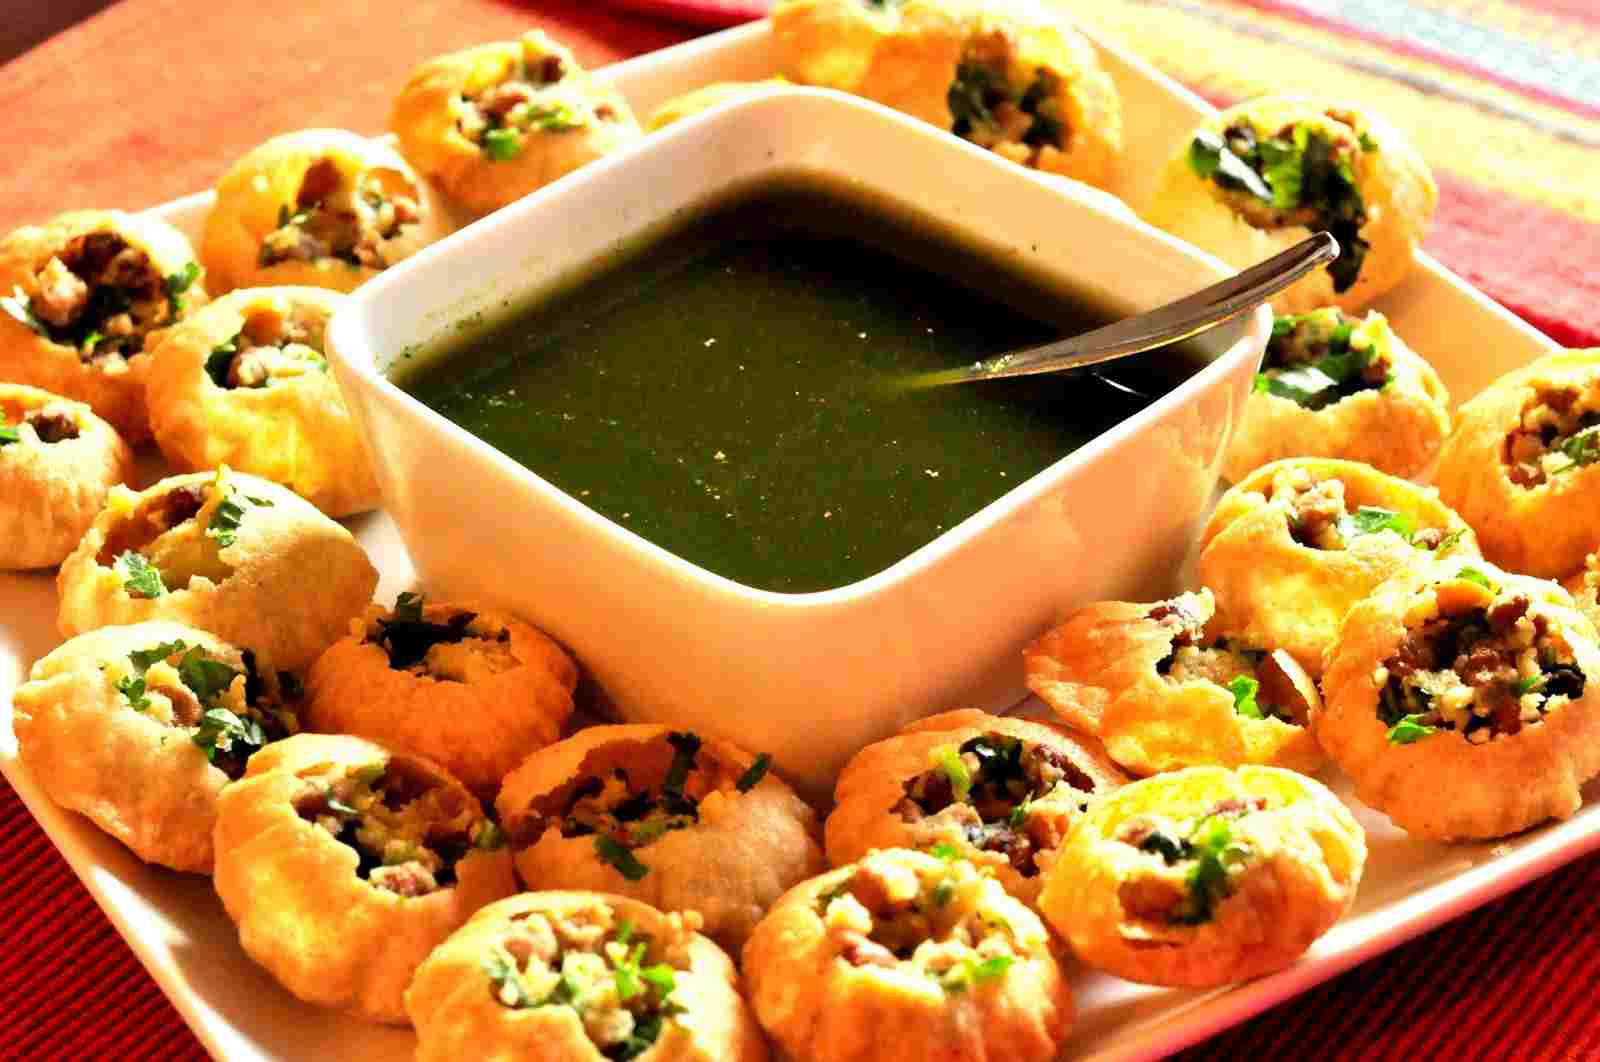 images of indian food items - photo #6